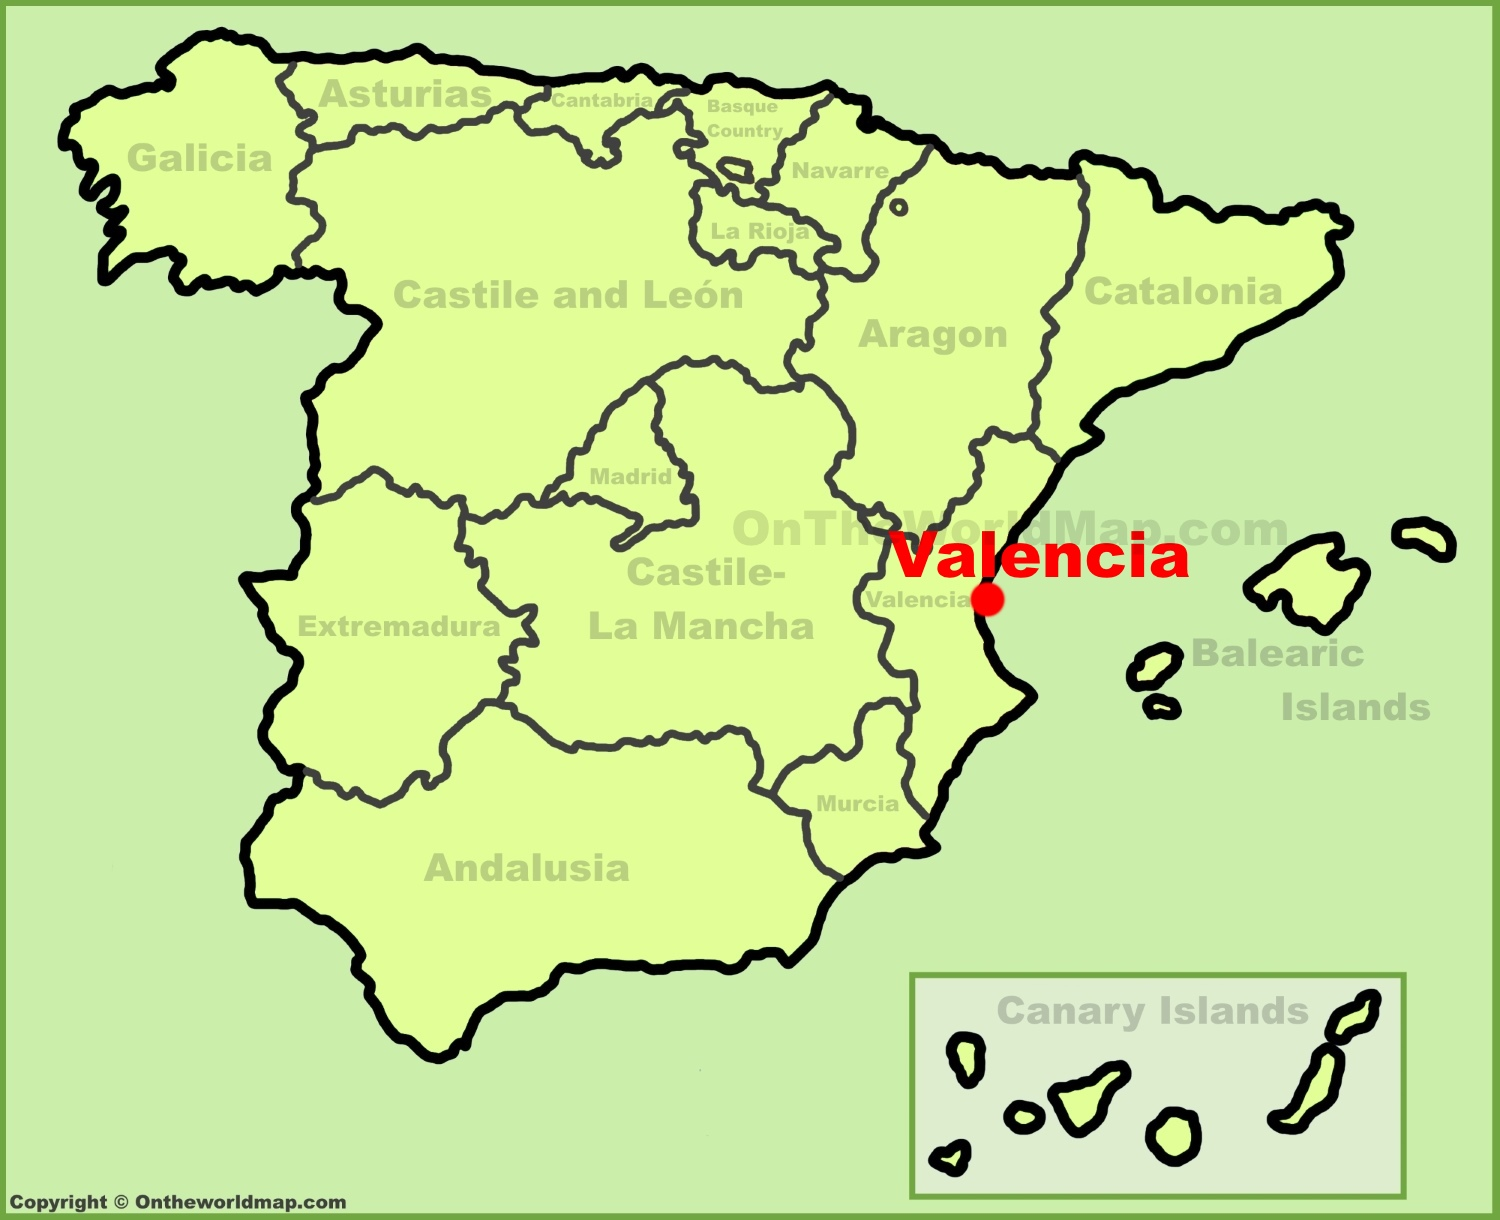 Valencia location on the Spain map